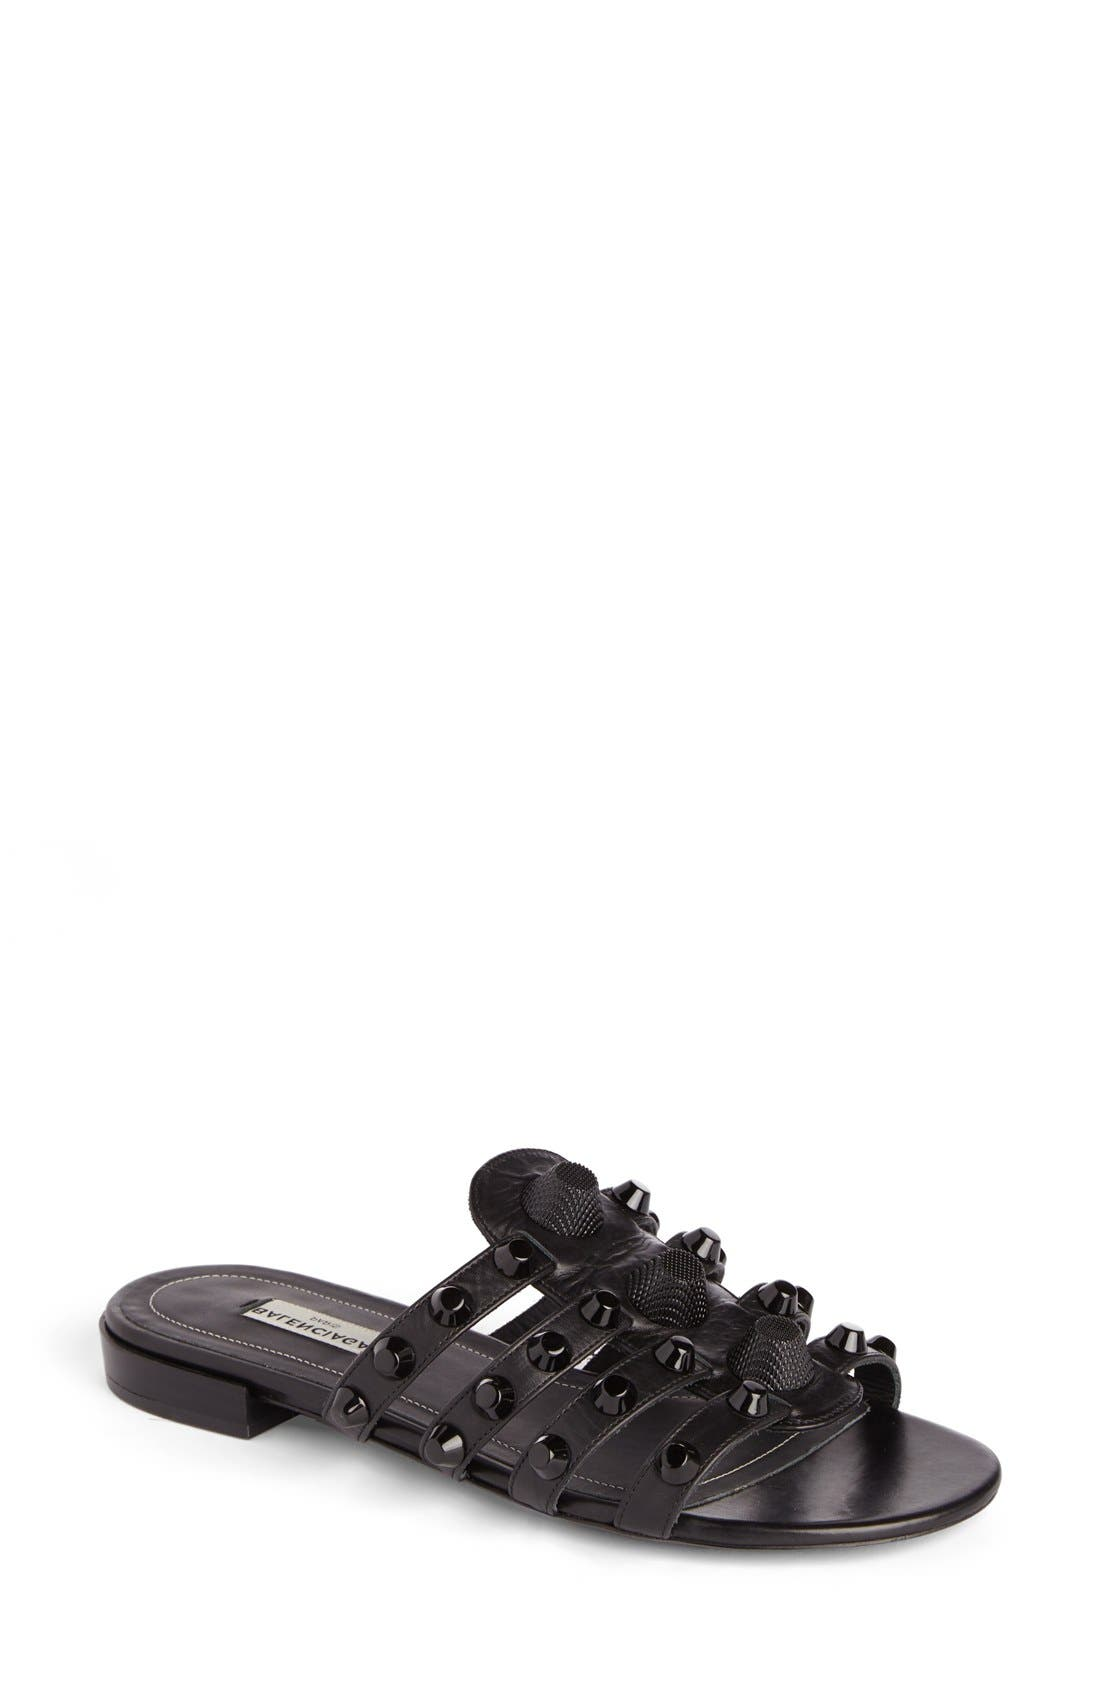 Balenciaga Studded Slip-On Sandal (Women)